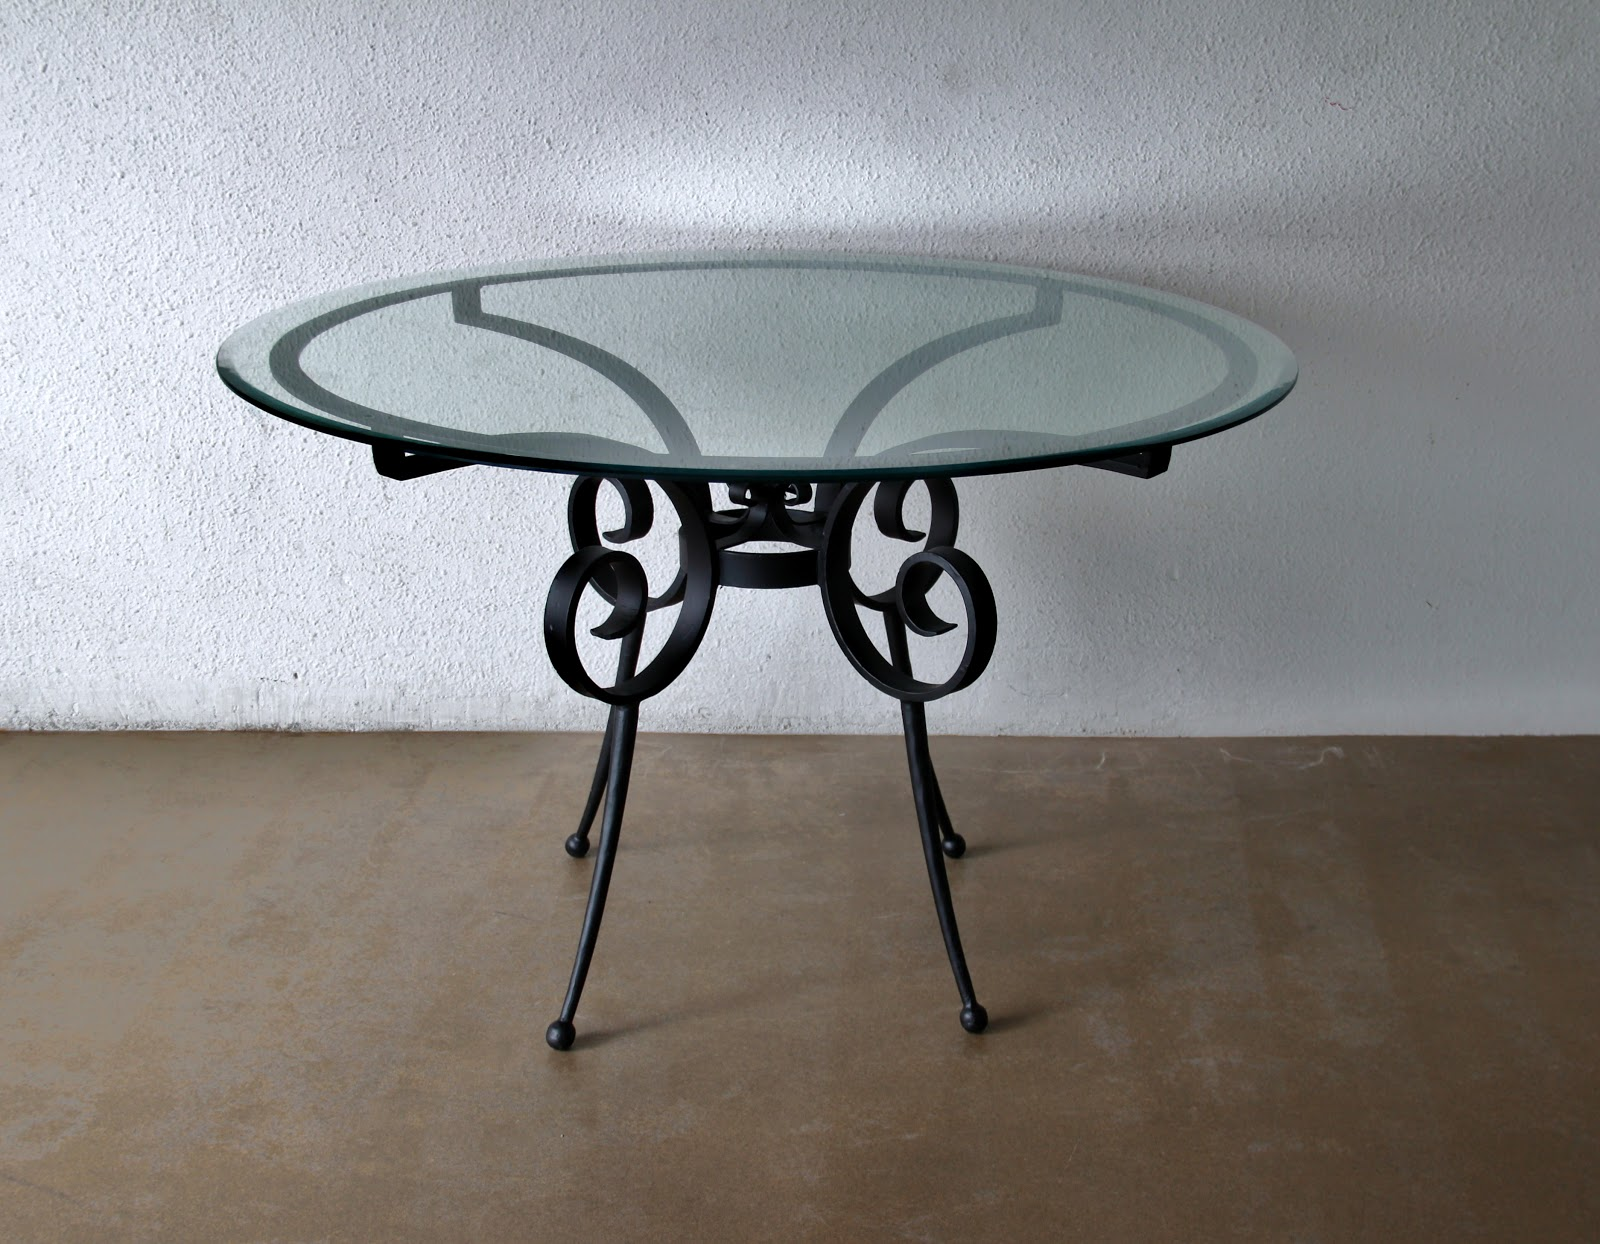 Discerning for designs the dominating influence of for Cast iron and glass dining table